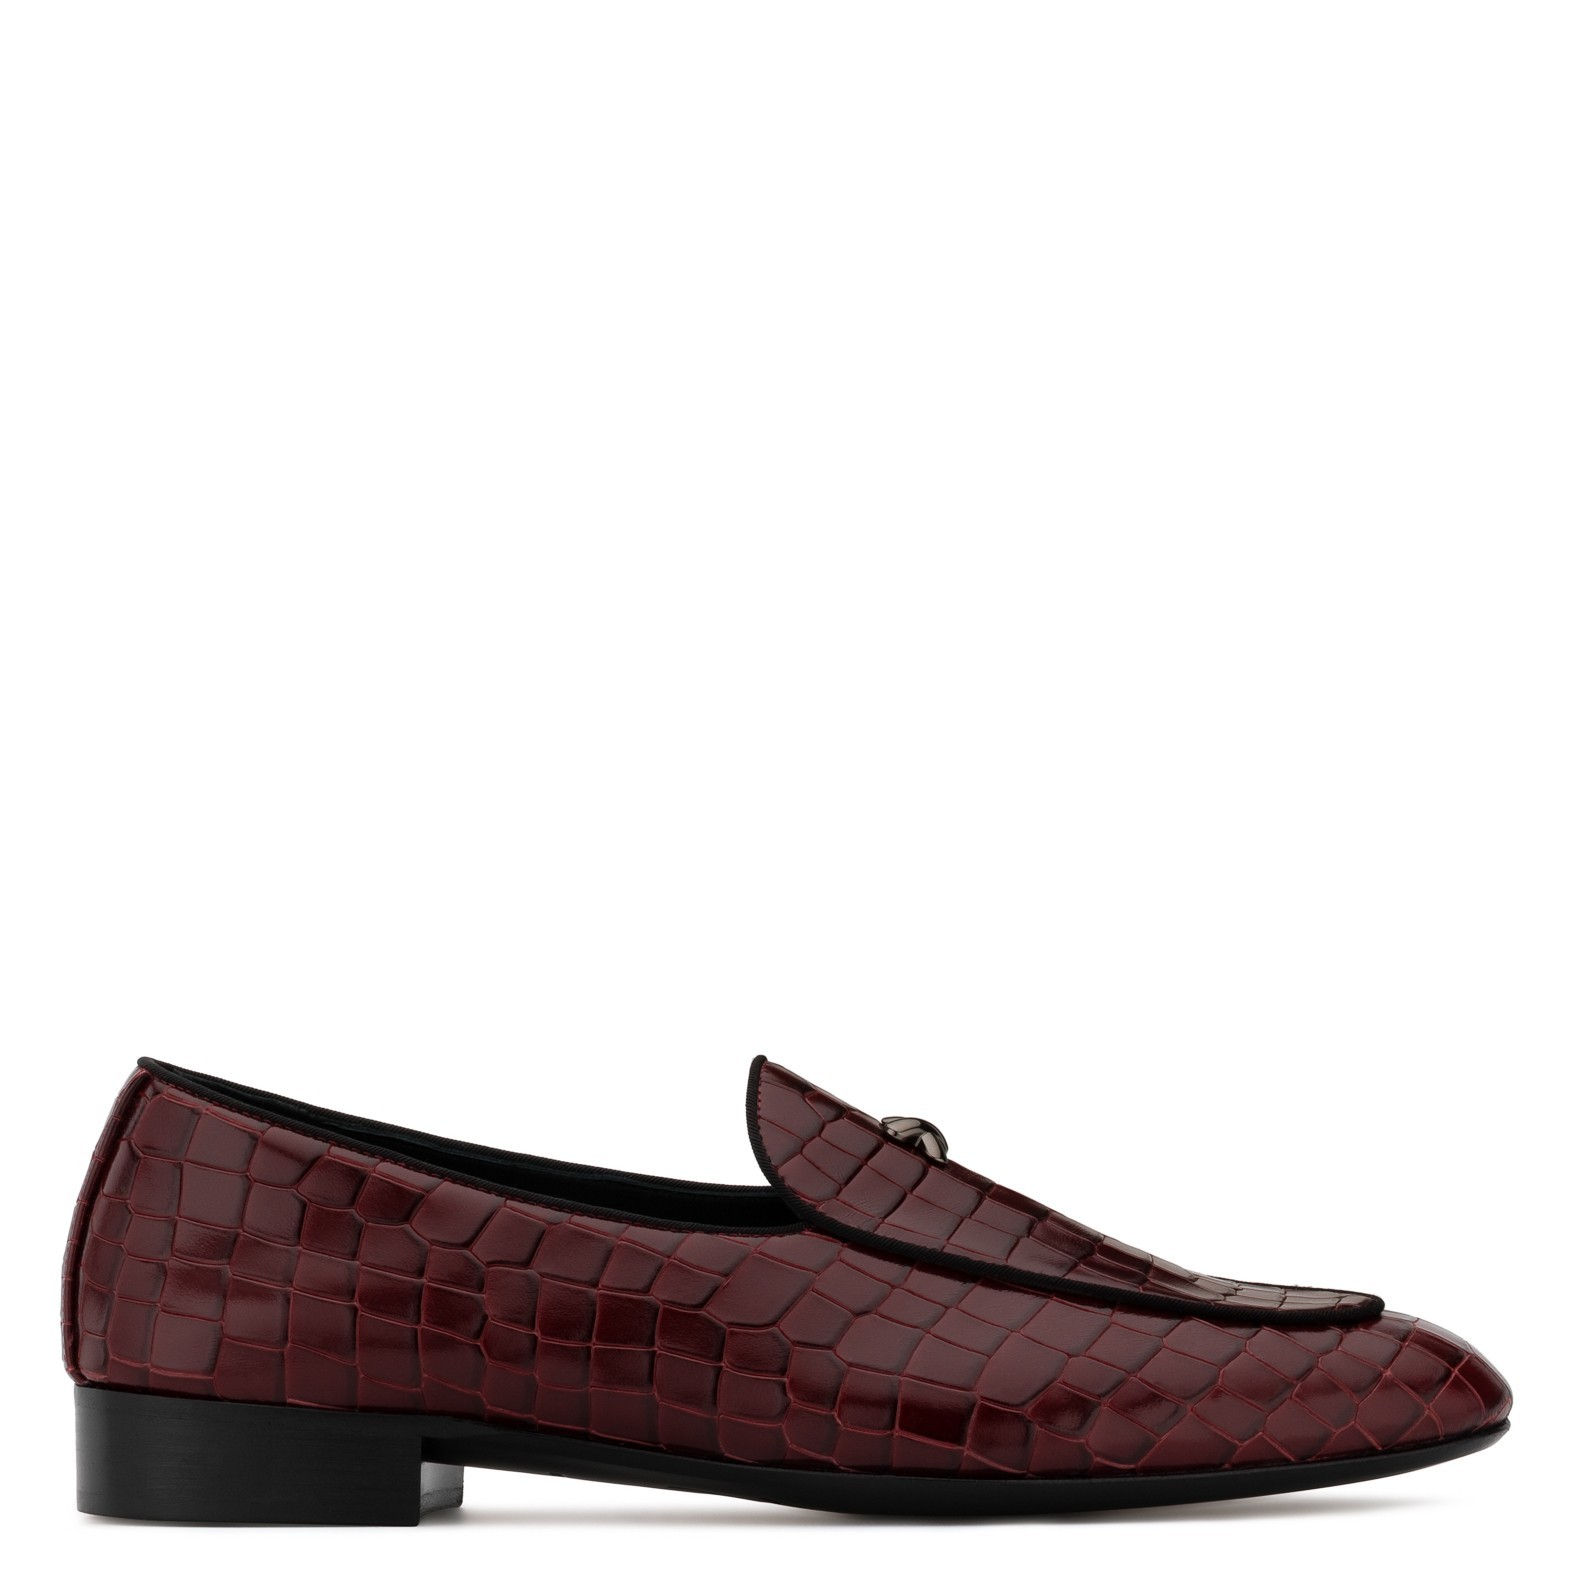 a45c216d4ae42 Giuseppe Zanotti Red Crocodile-embossed leather loafer | ShoeSales